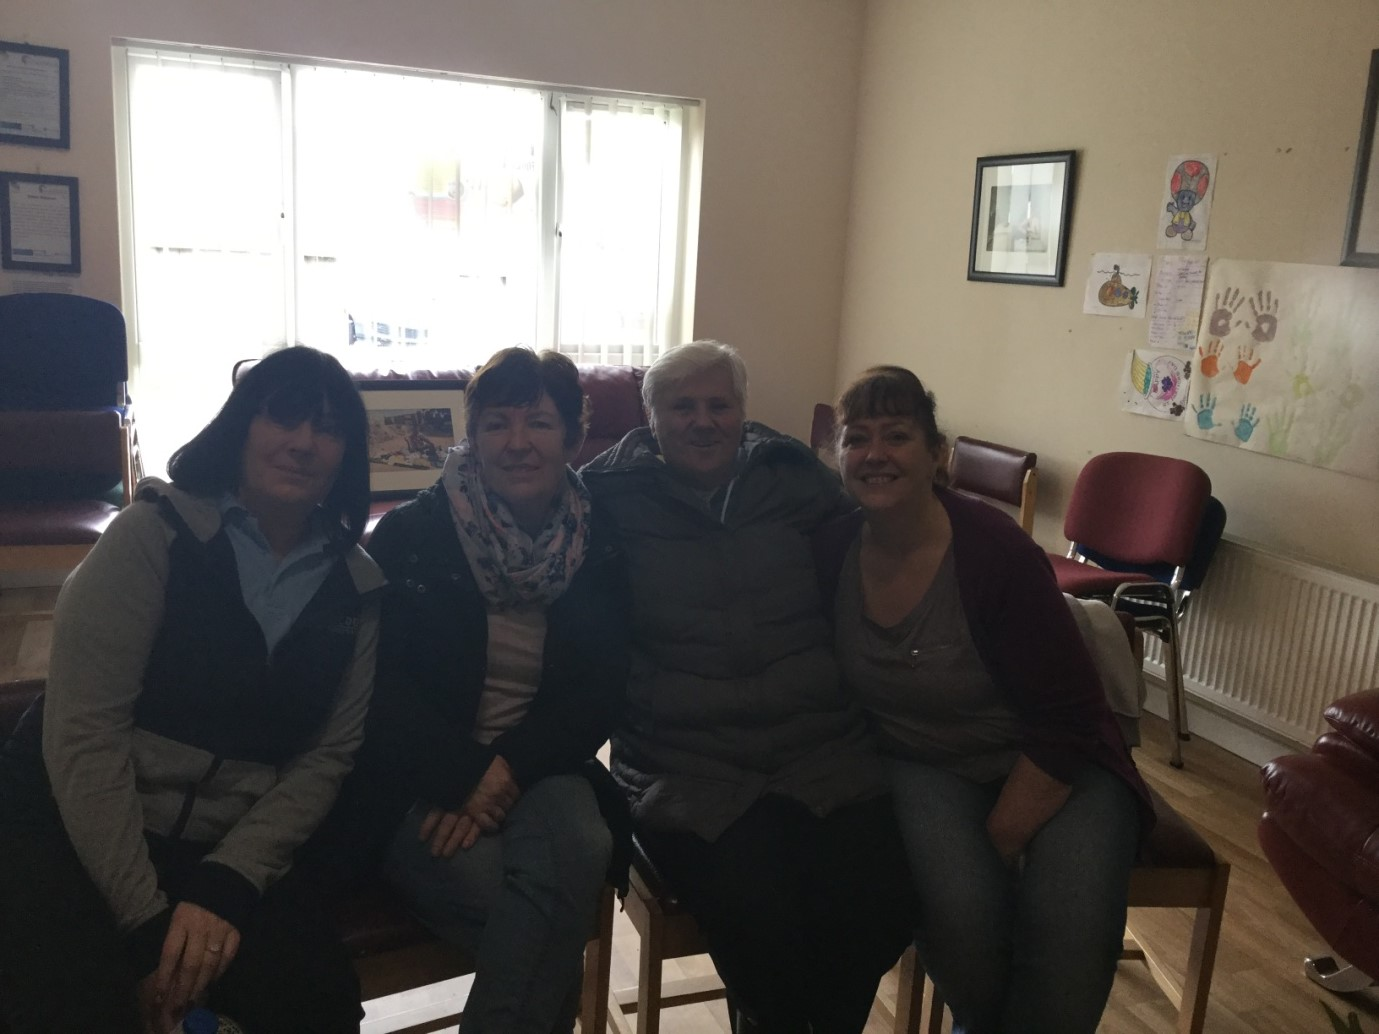 Community Tutor Toni (last on right) pictured with some of the women that have participated on the Cooking on A Budget Course. They are now learning about healthy desserts.